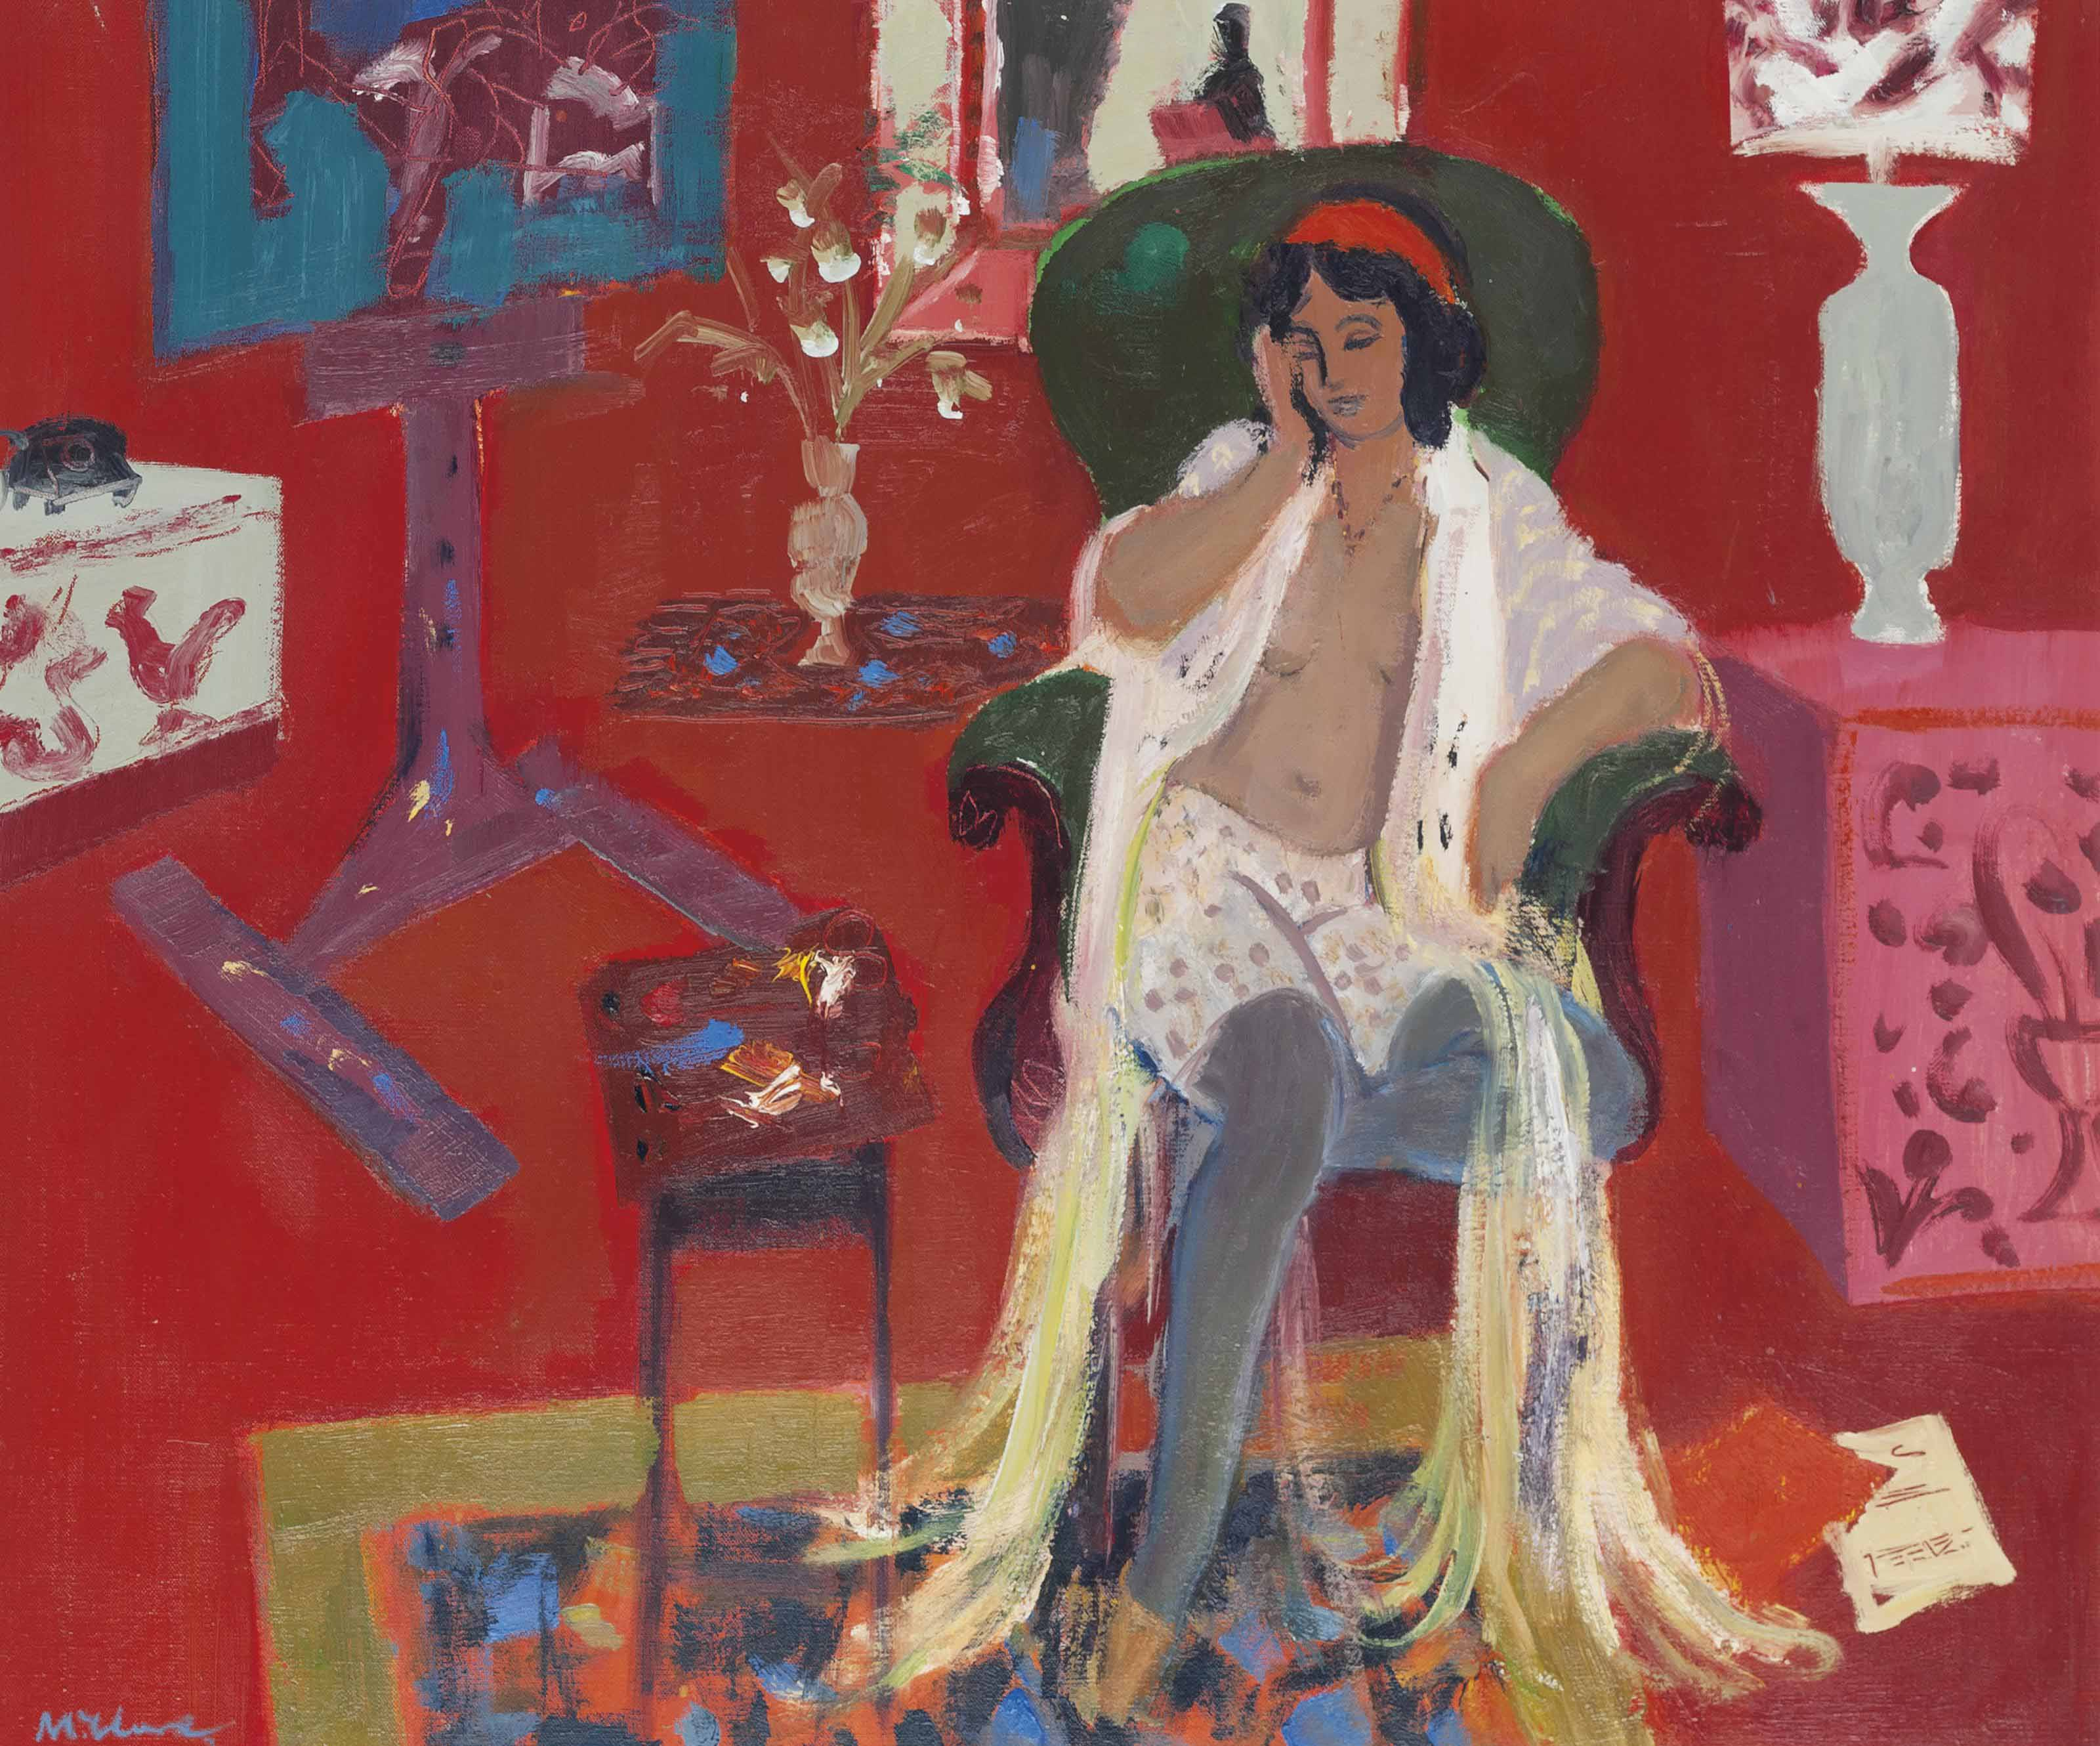 Woman seated in the artist's studio